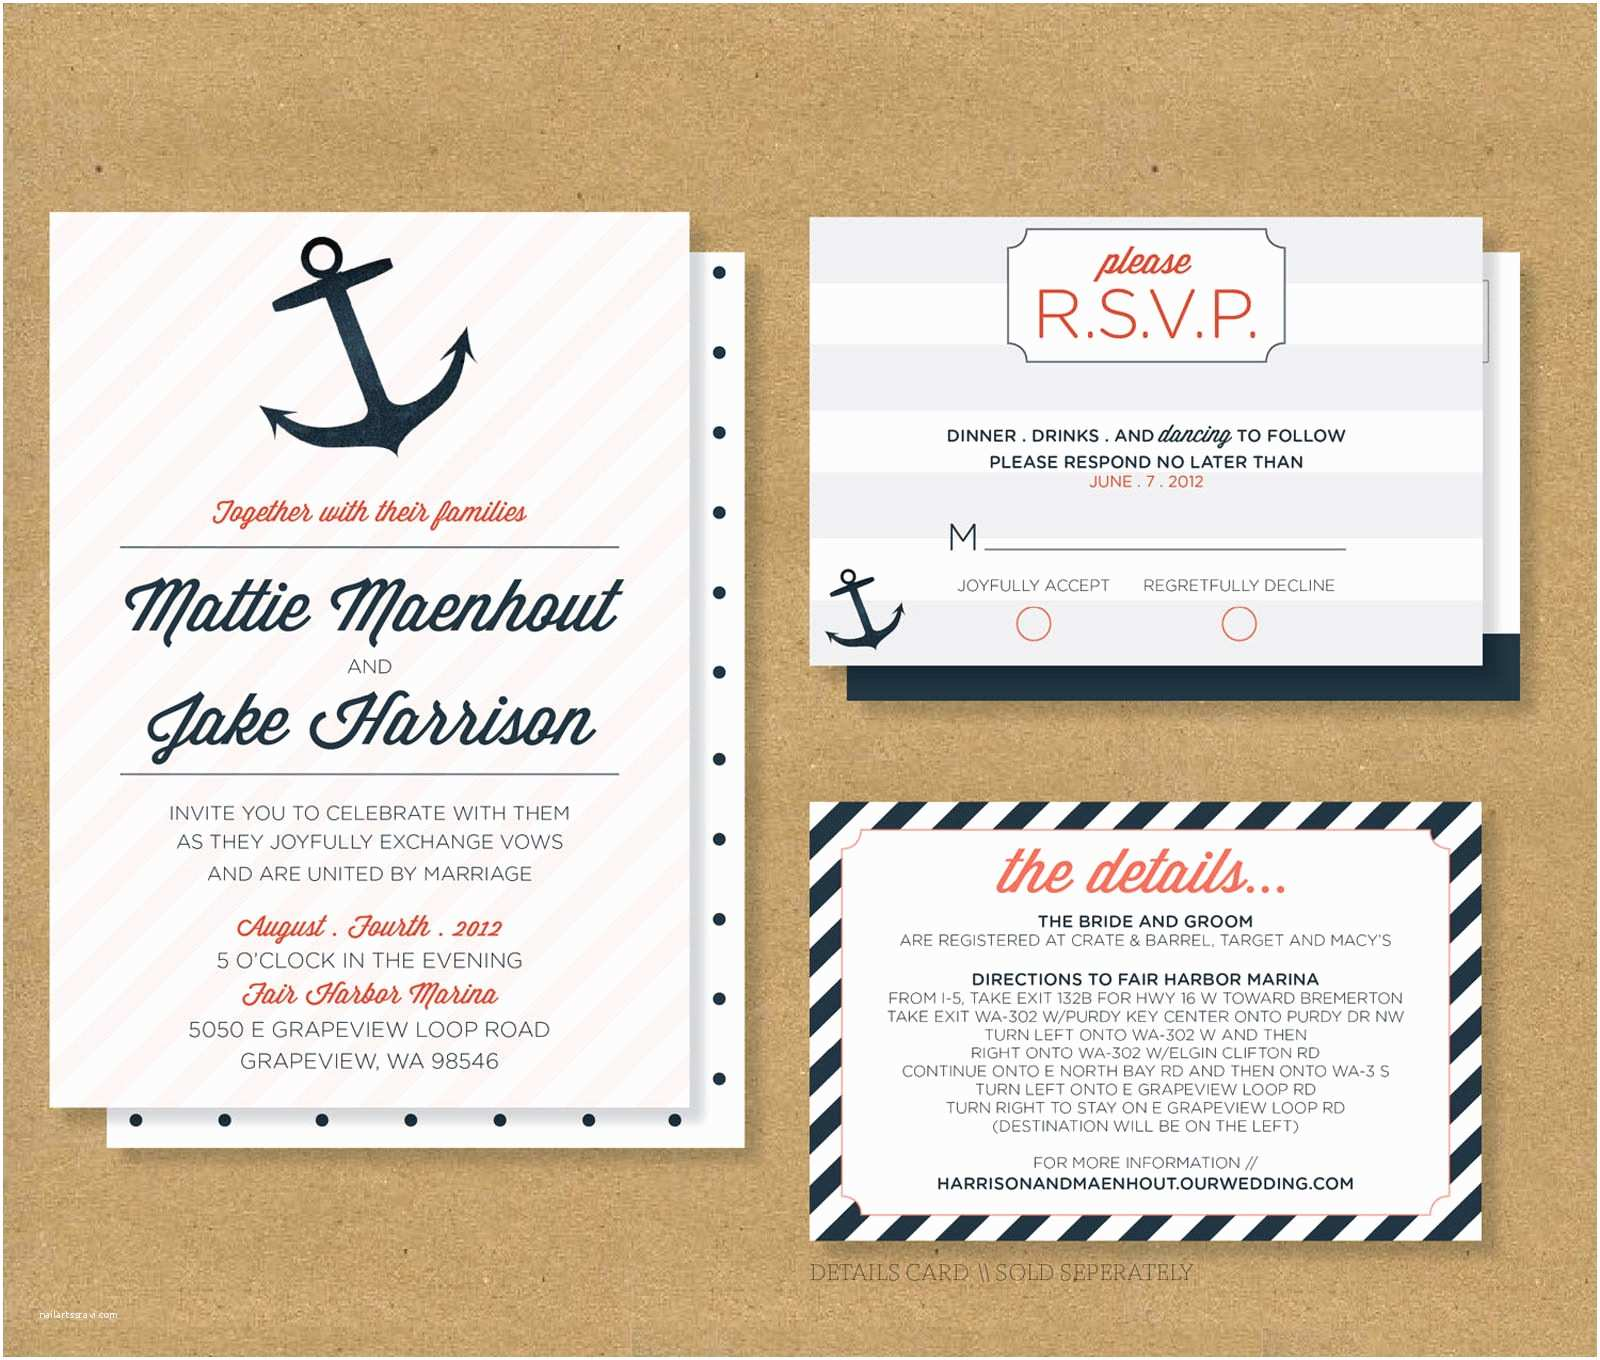 How to ask for Money On A Wedding Invite asking for Monetary Gifts In Wedding Invitation